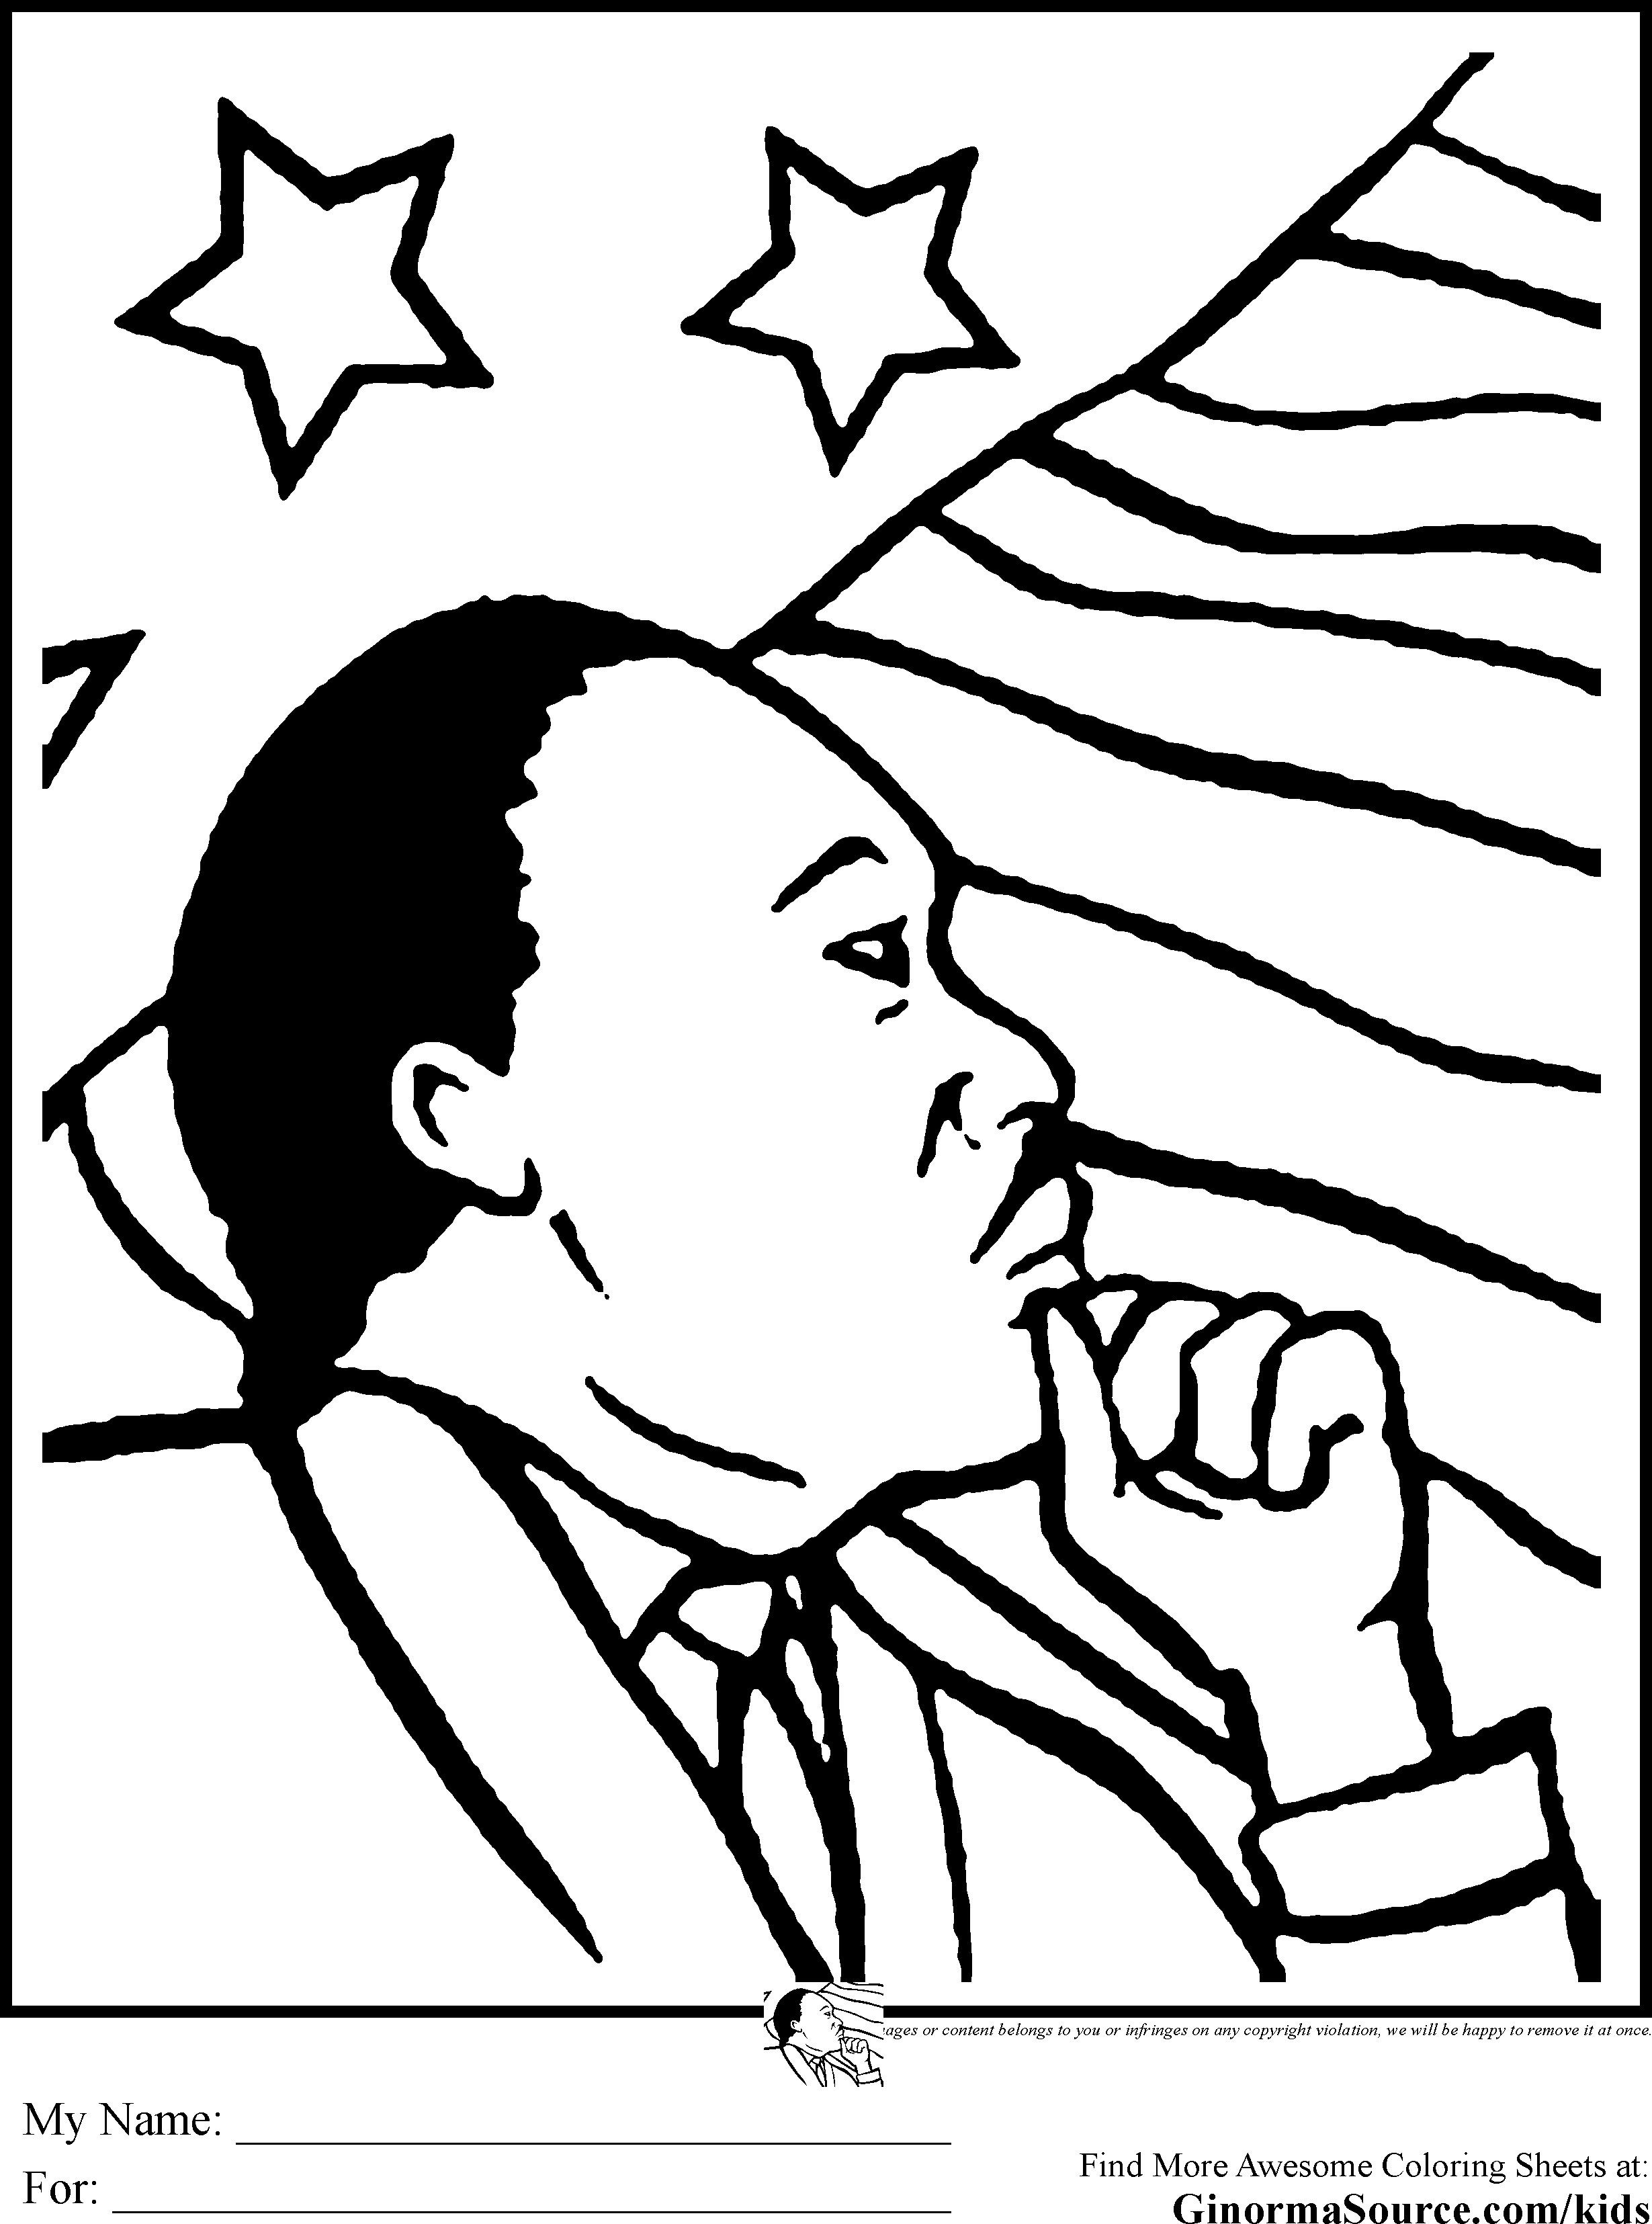 worksheet Mlk Worksheets martin luther king activities worksheets and mlk coloring pages within for kindergarten